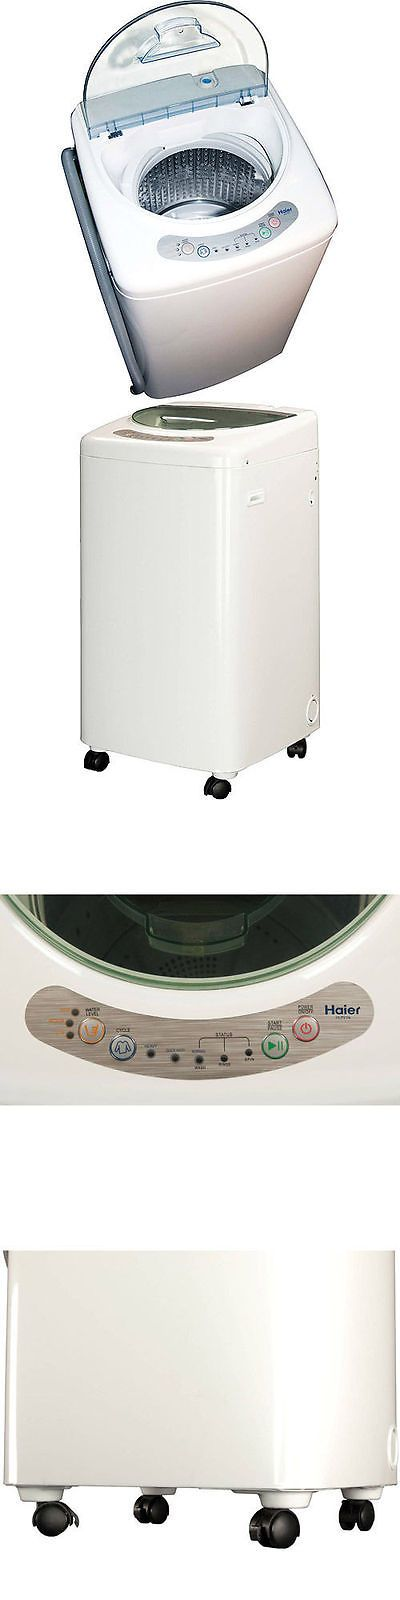 Washing Machines 71256: Haier 1.0 Cubic Foot Portable Washing Machine -> BUY IT NOW ONLY: $247.37 on eBay!